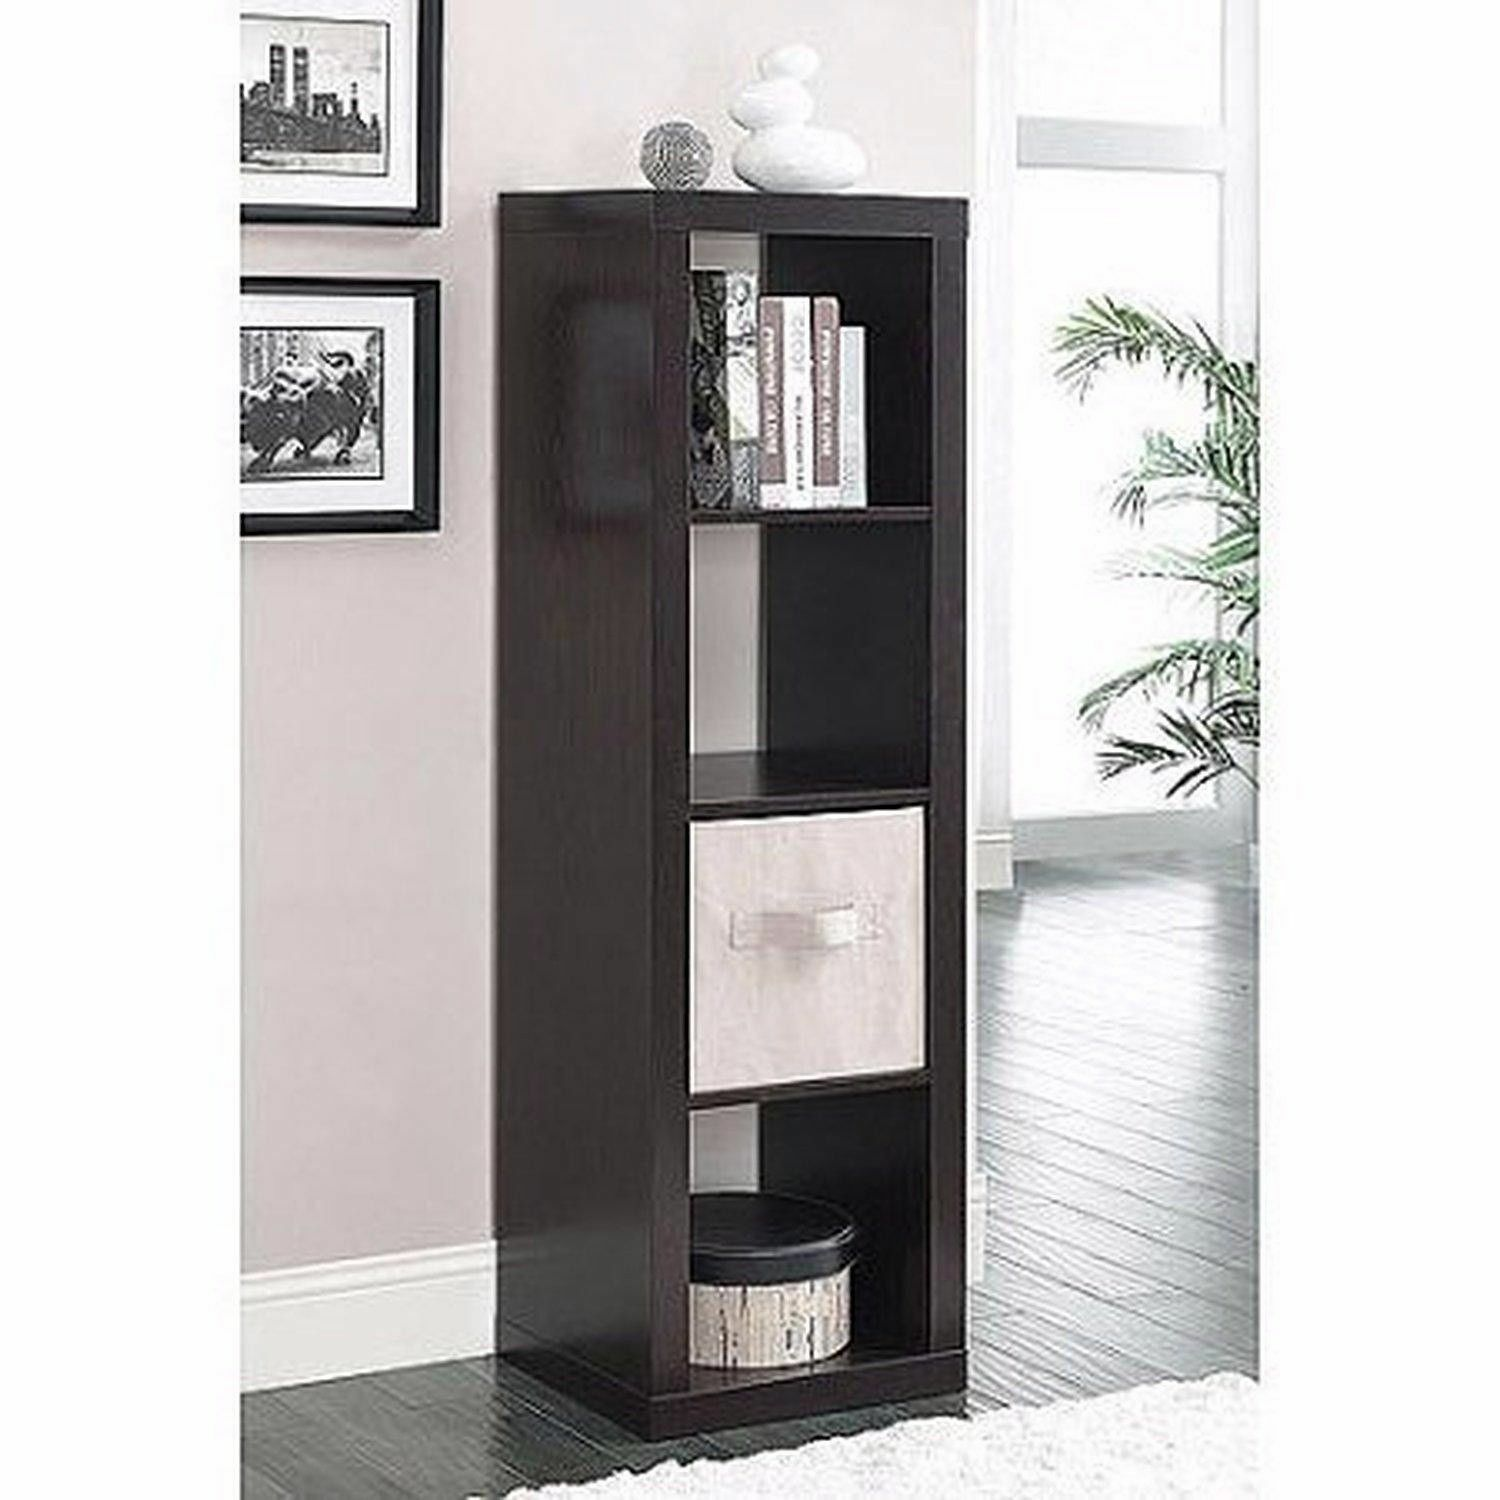 Better Homes and Gardens Storage Cubes 4-cube Organizer Bookcase ...